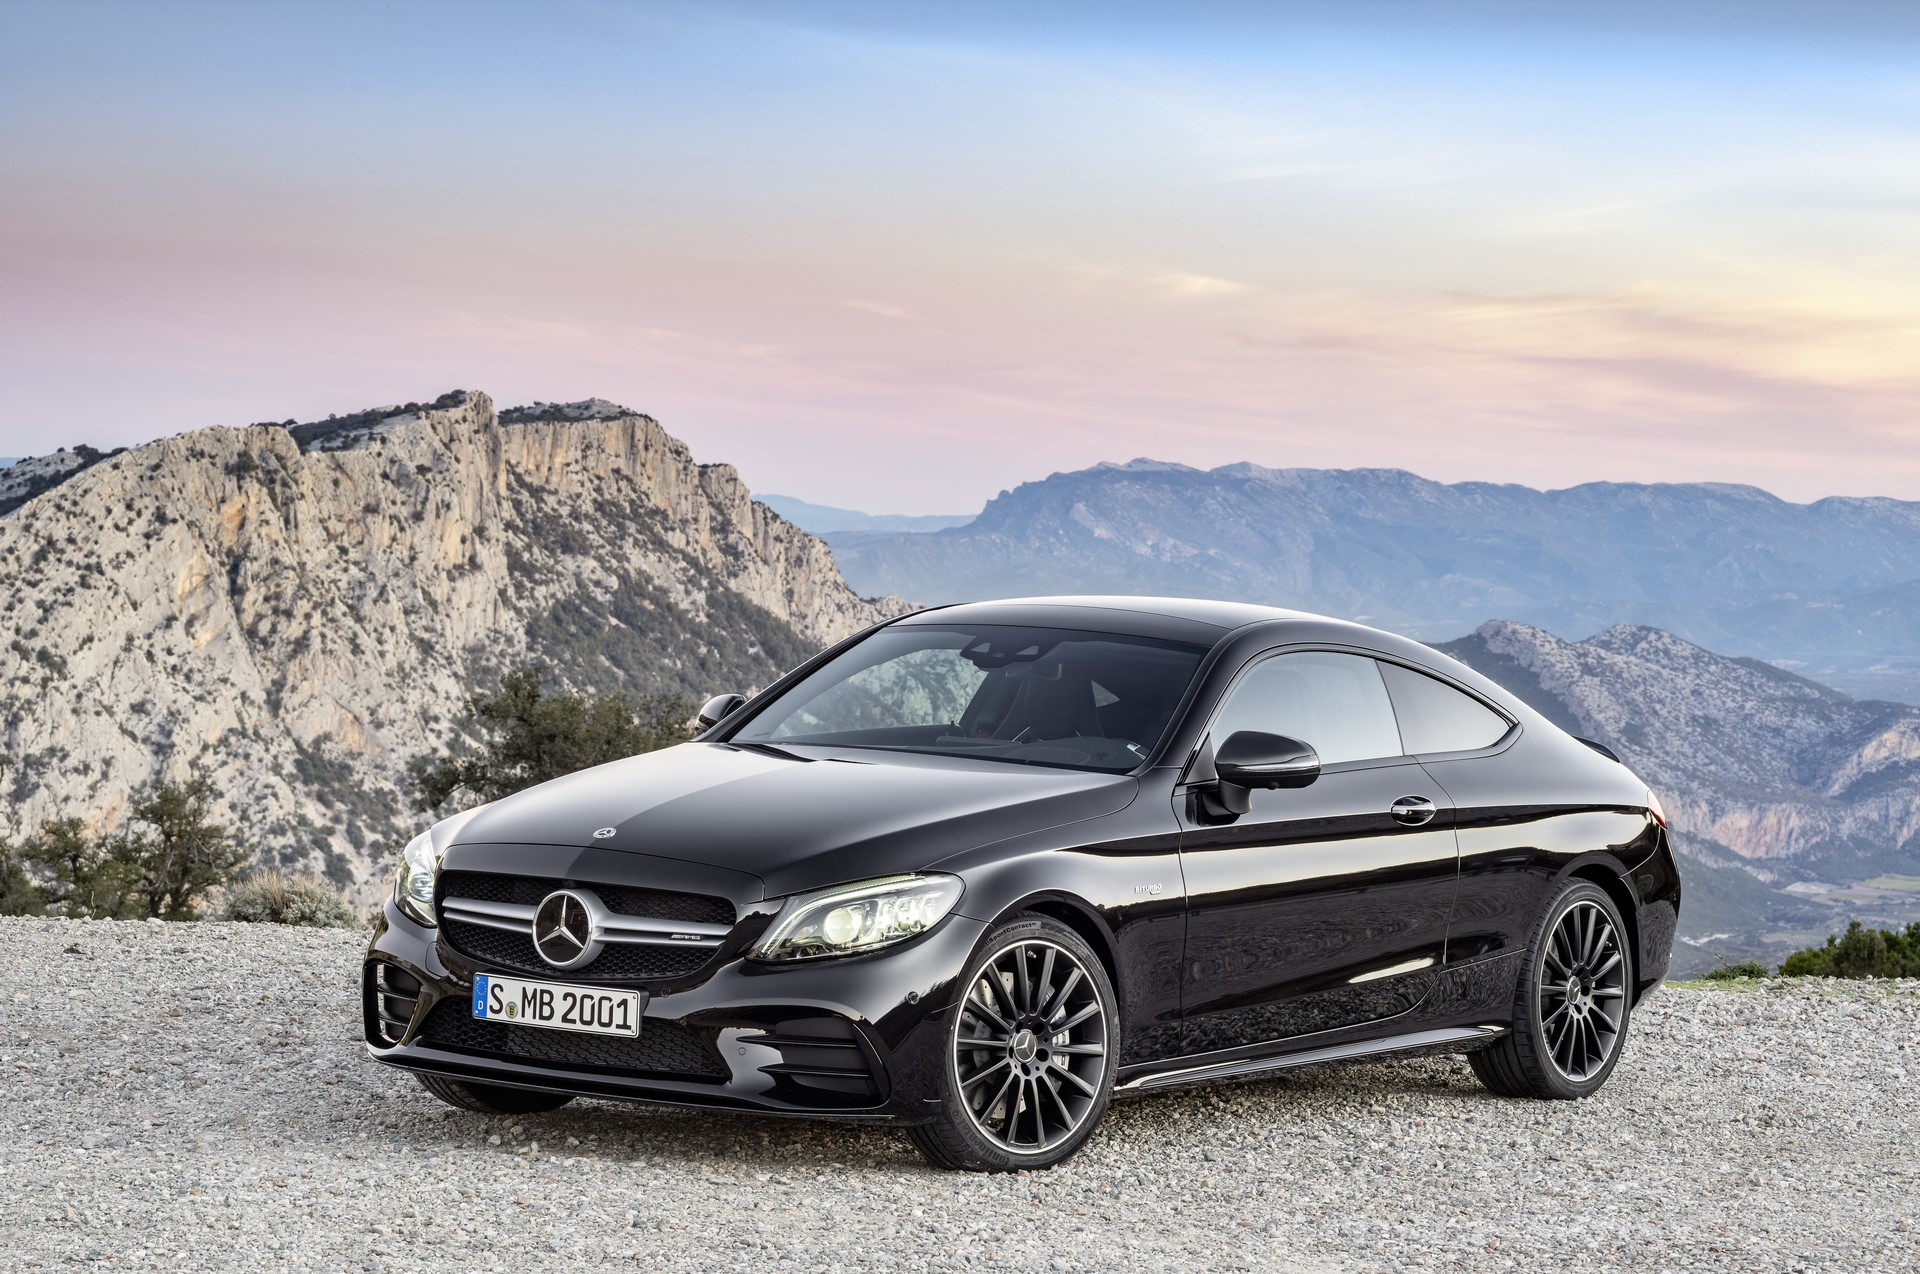 mercedes c class coupe and cabriolet facelift vehiclejar blog. Black Bedroom Furniture Sets. Home Design Ideas